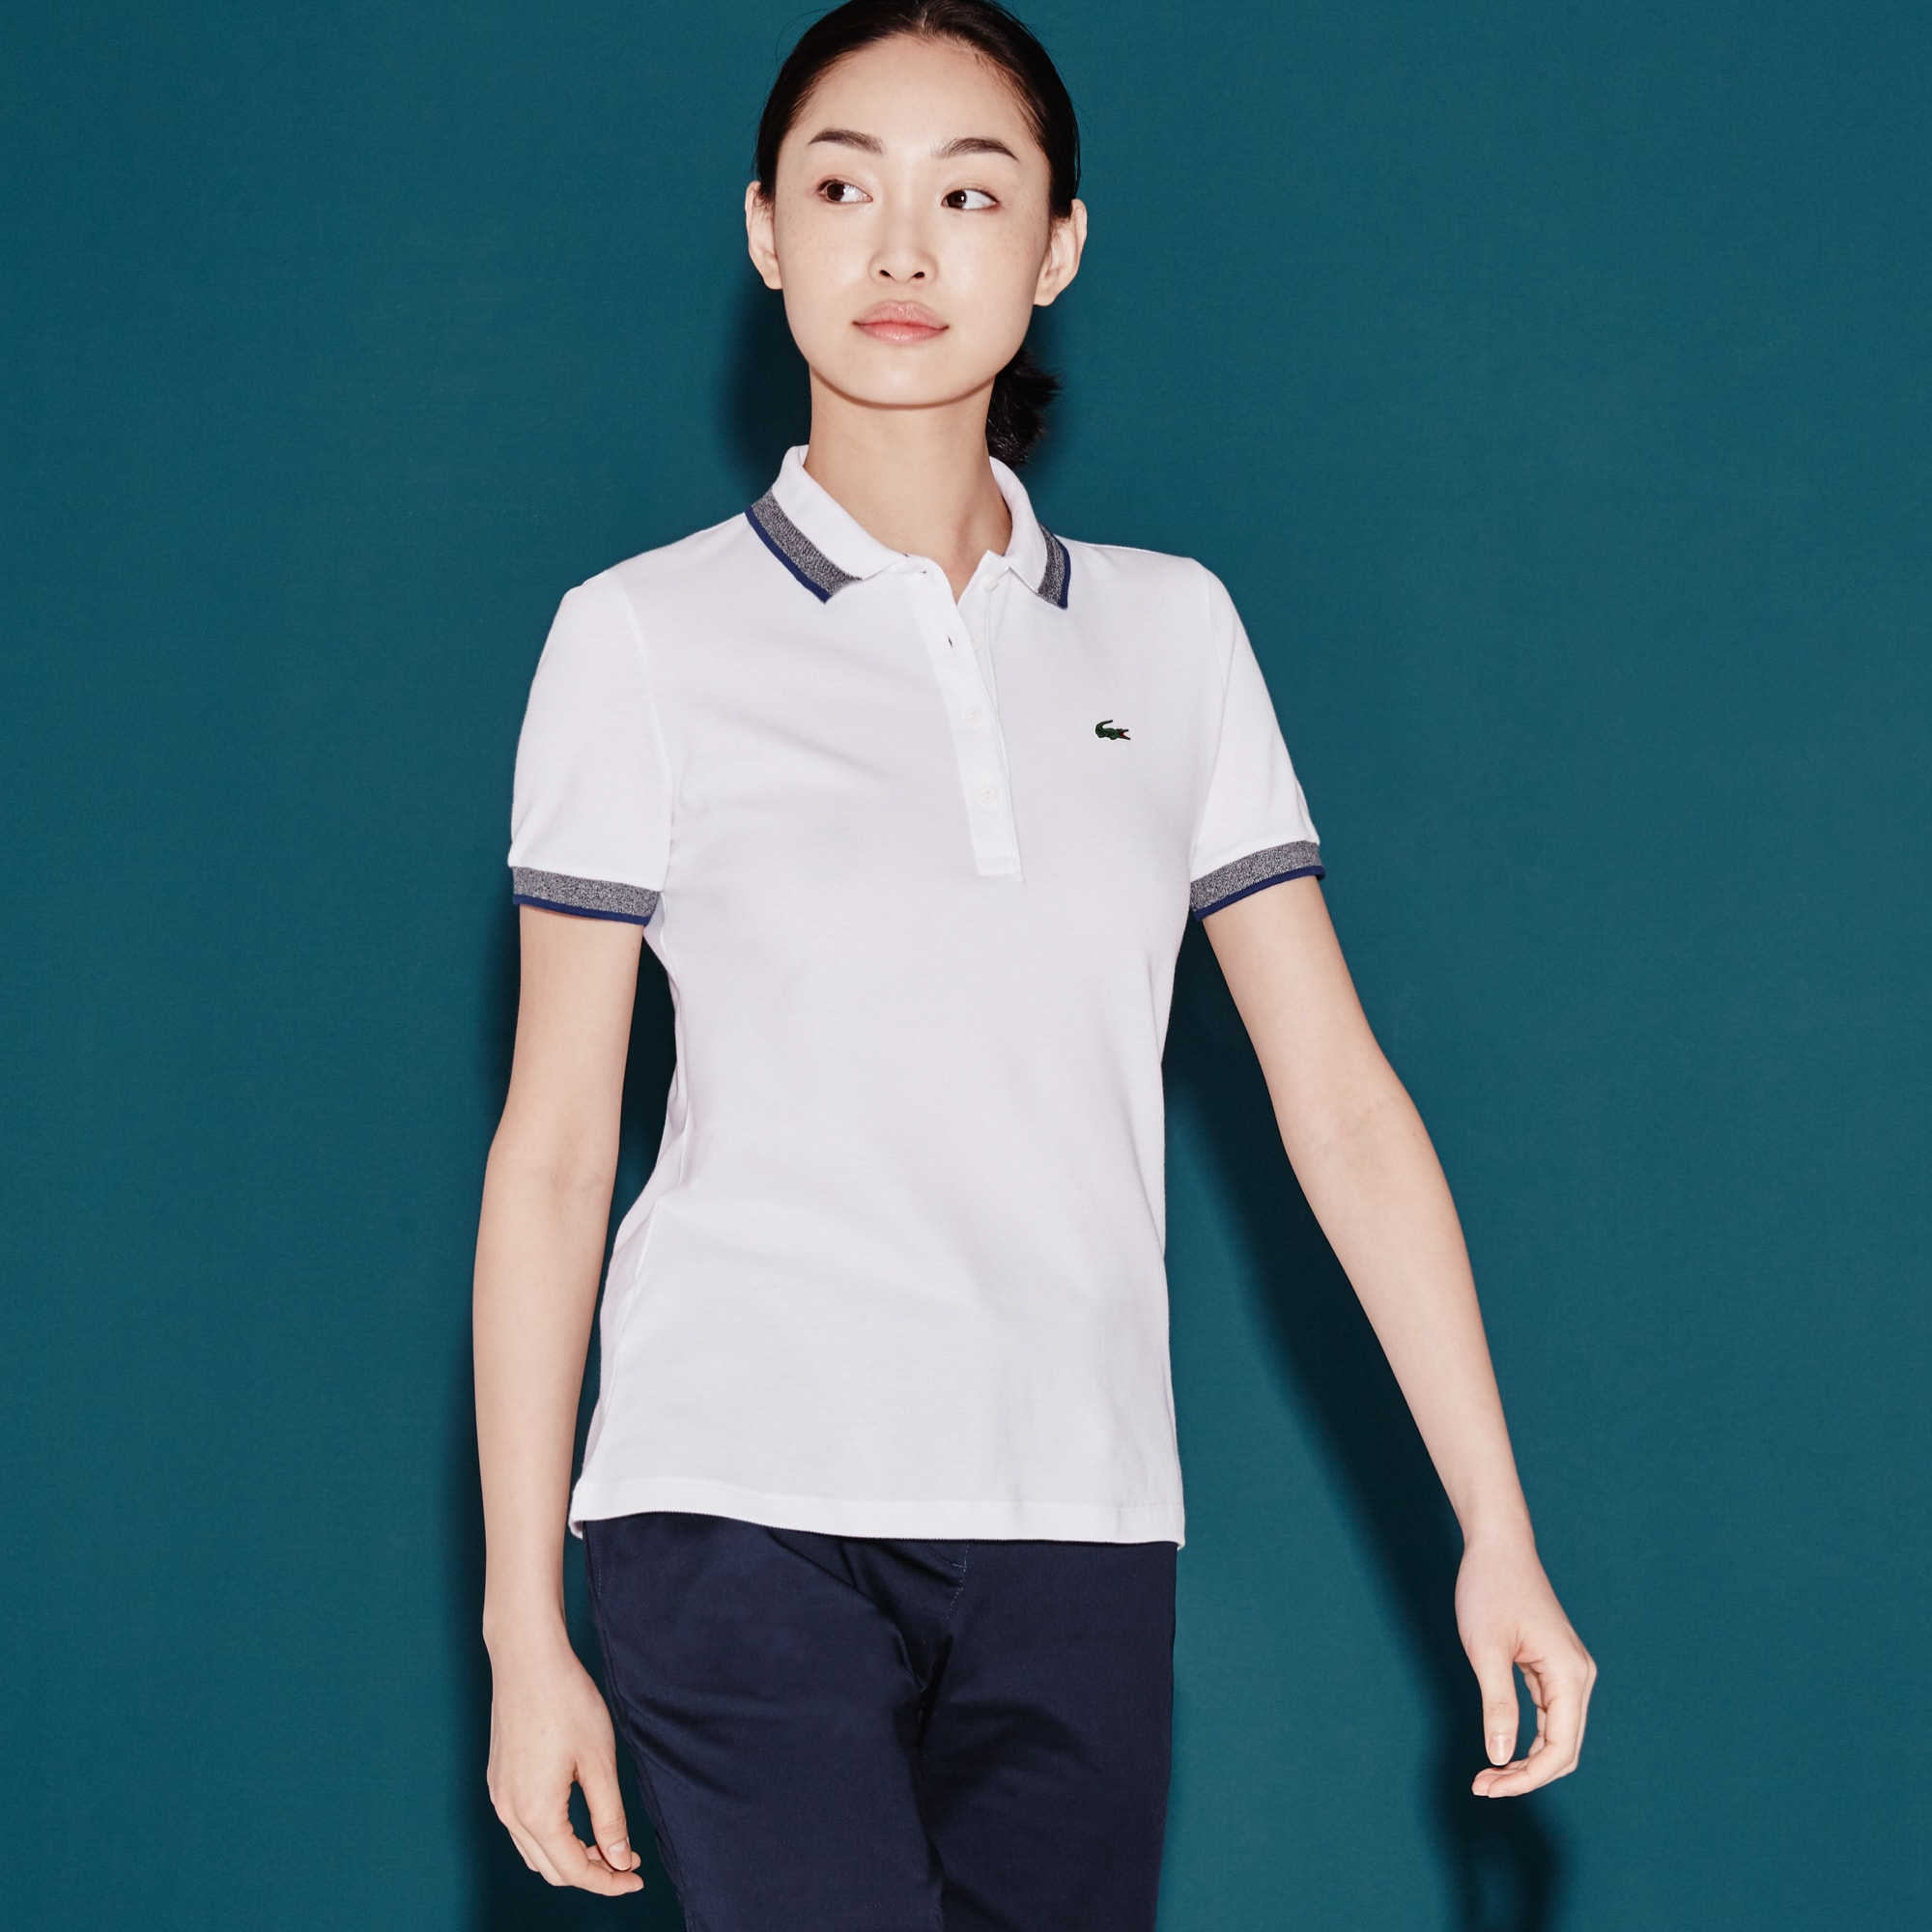 polo shirts for women lacoste women 39 s polo shirts lacoste. Black Bedroom Furniture Sets. Home Design Ideas